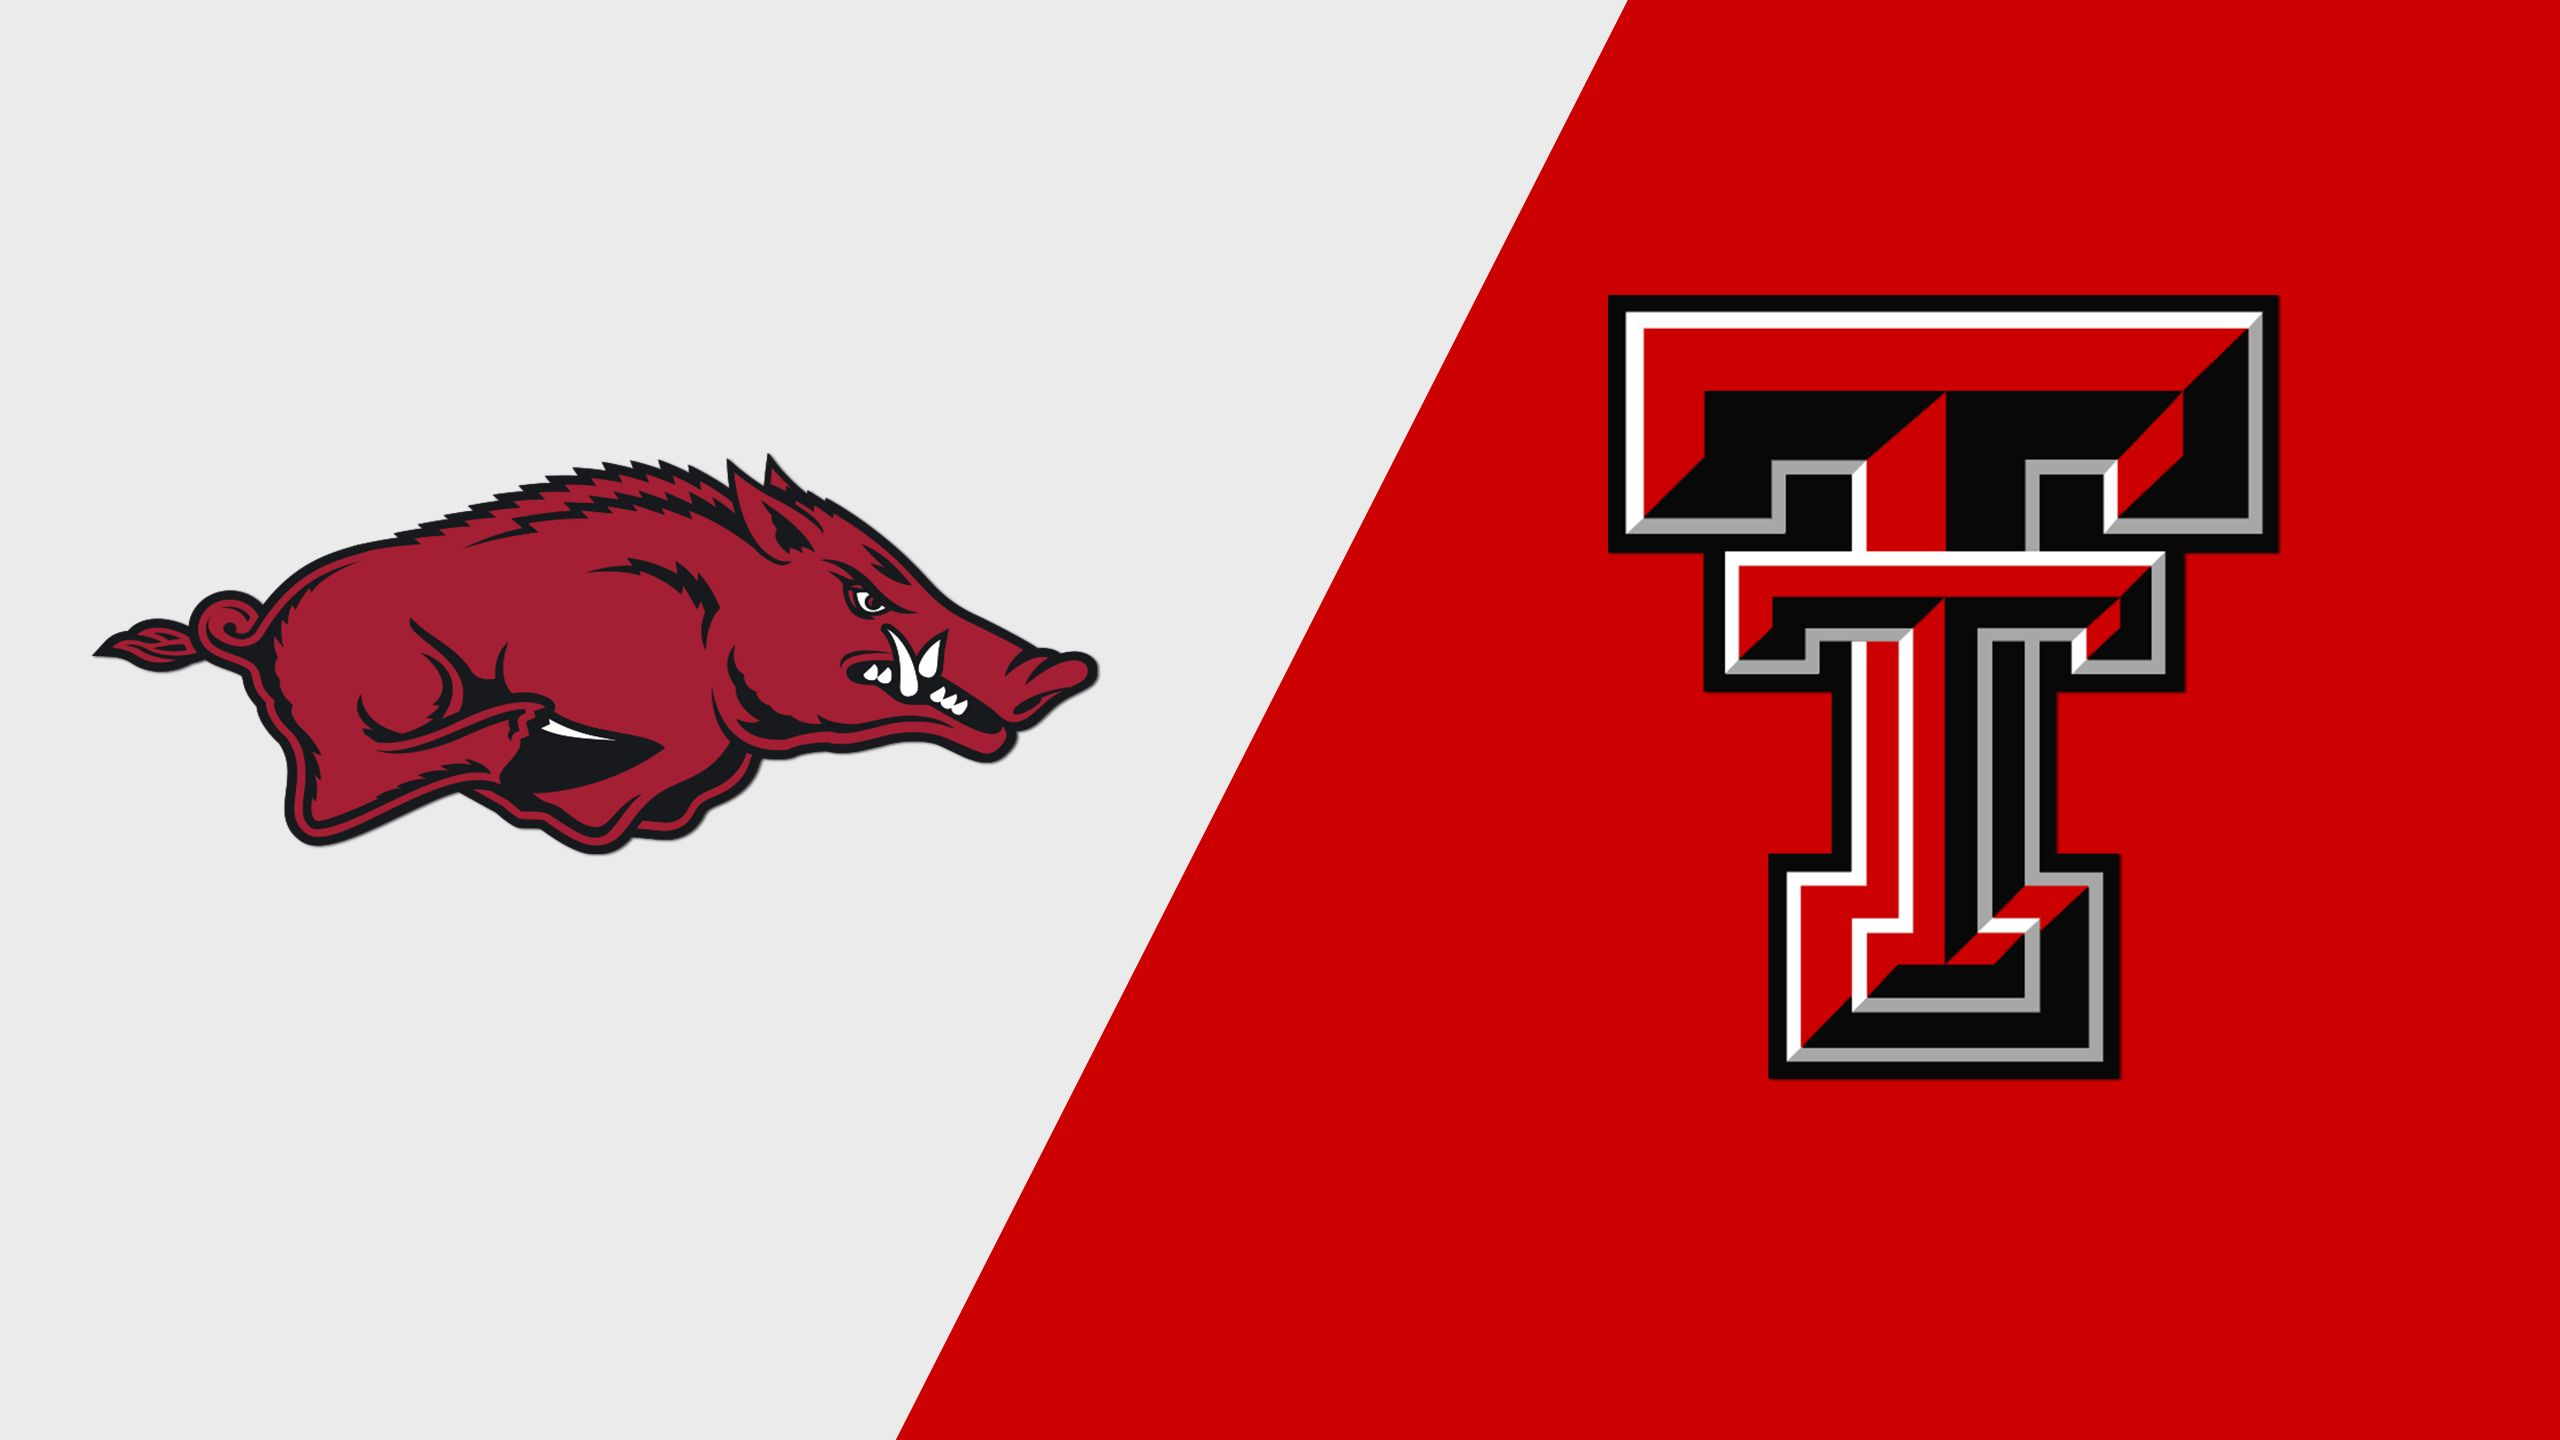 #5 Arkansas vs. #9 Texas Tech (Game 8) (College World Series)